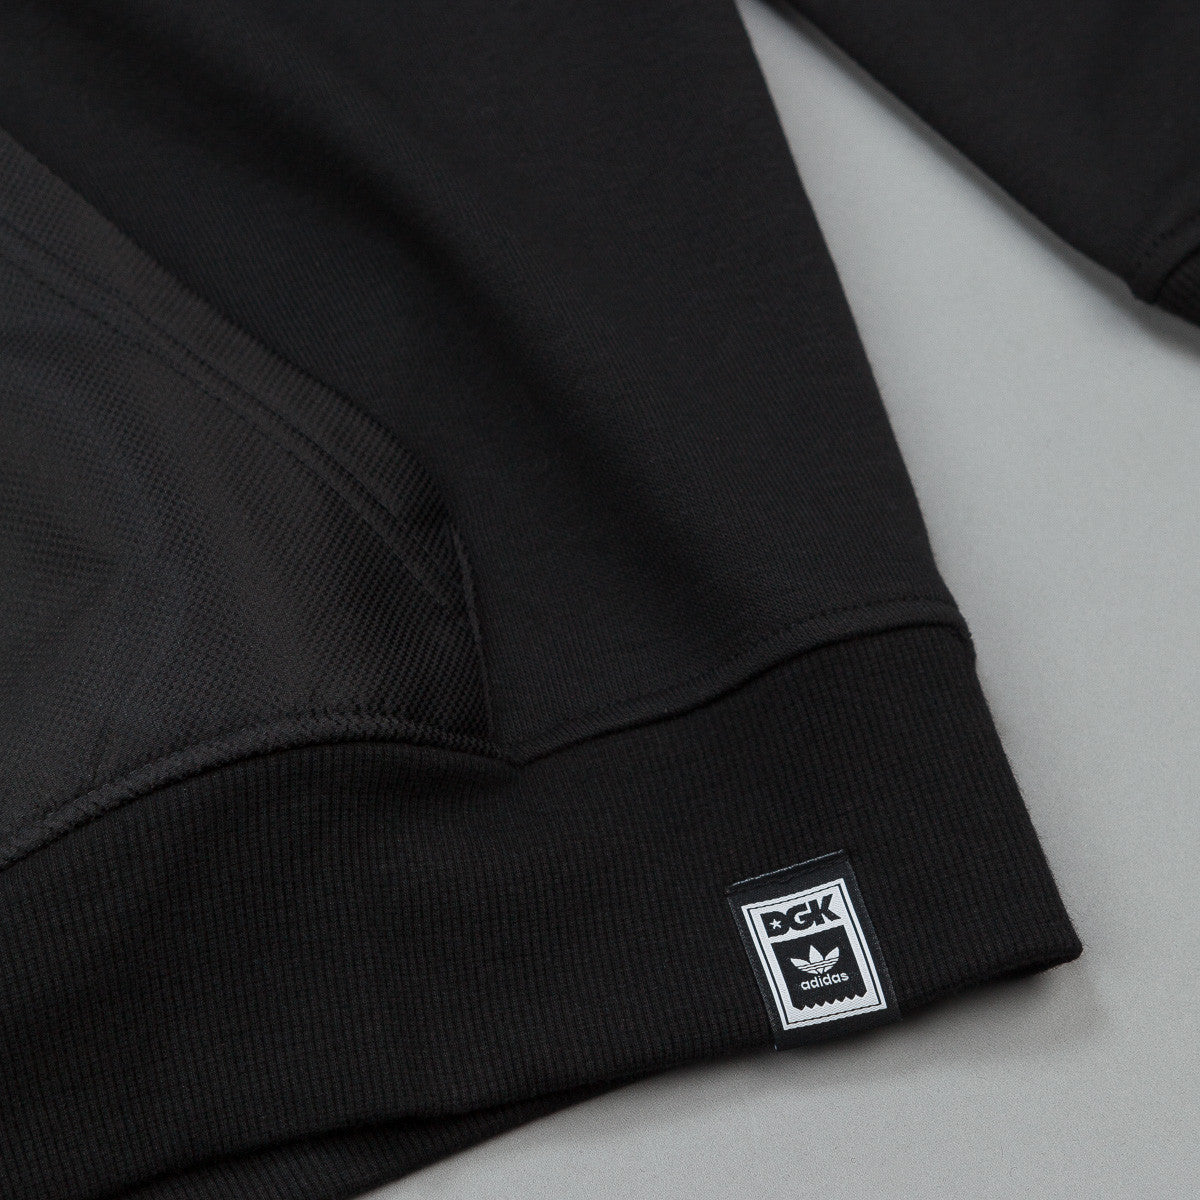 Adidas DGK Hooded Sweatshirt - Black